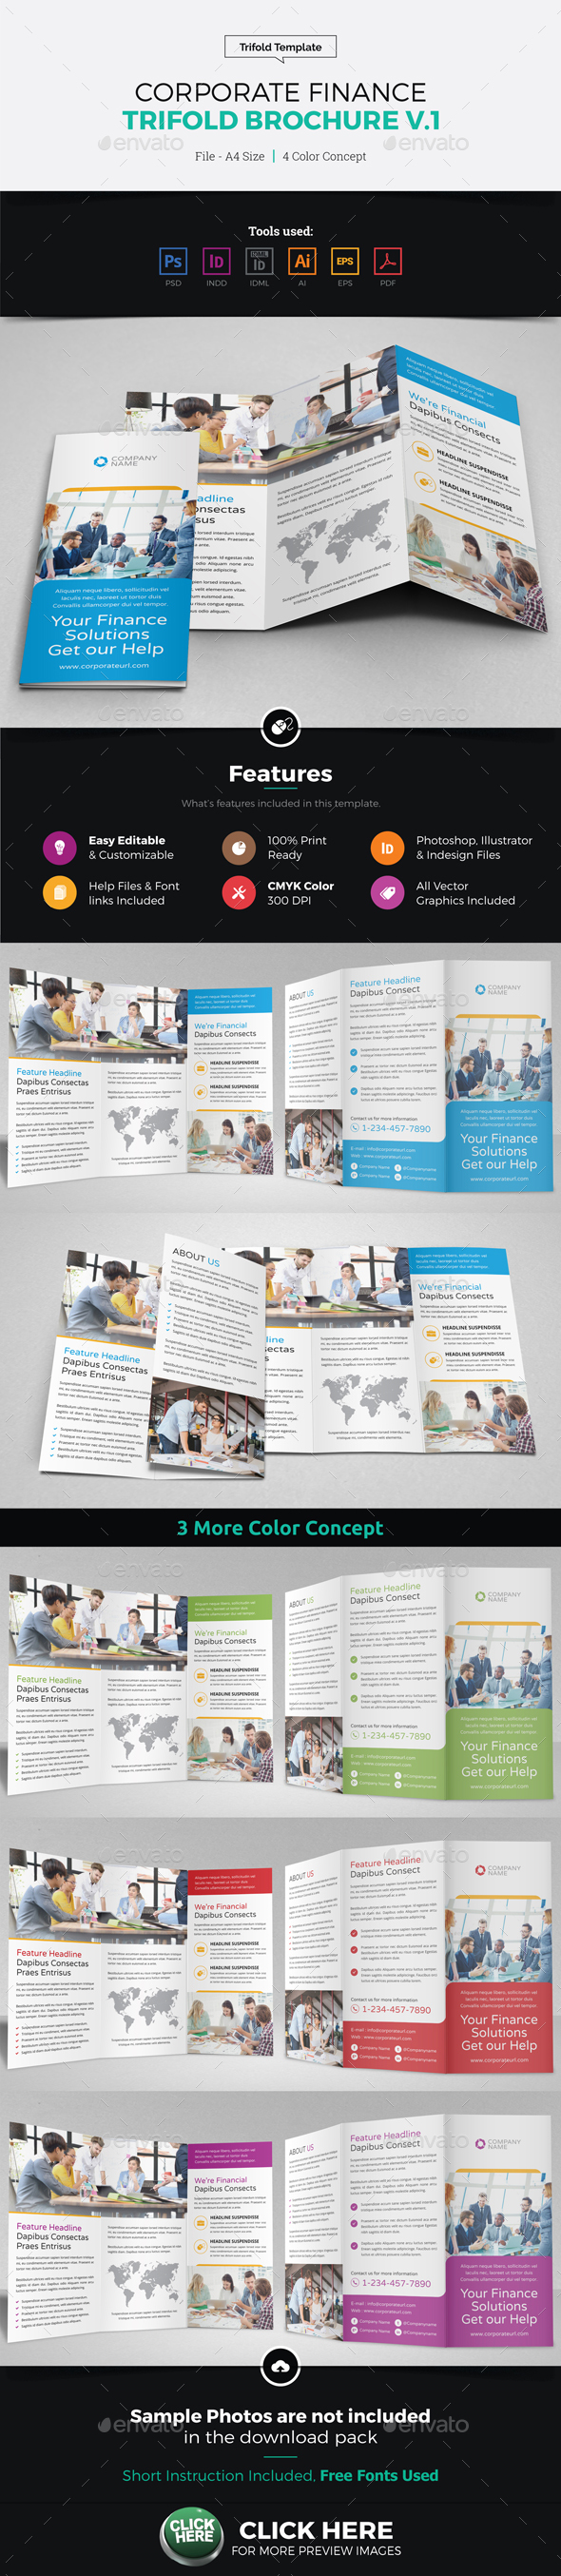 Corporate Finance Trifold Brochure v1 - Corporate Brochures